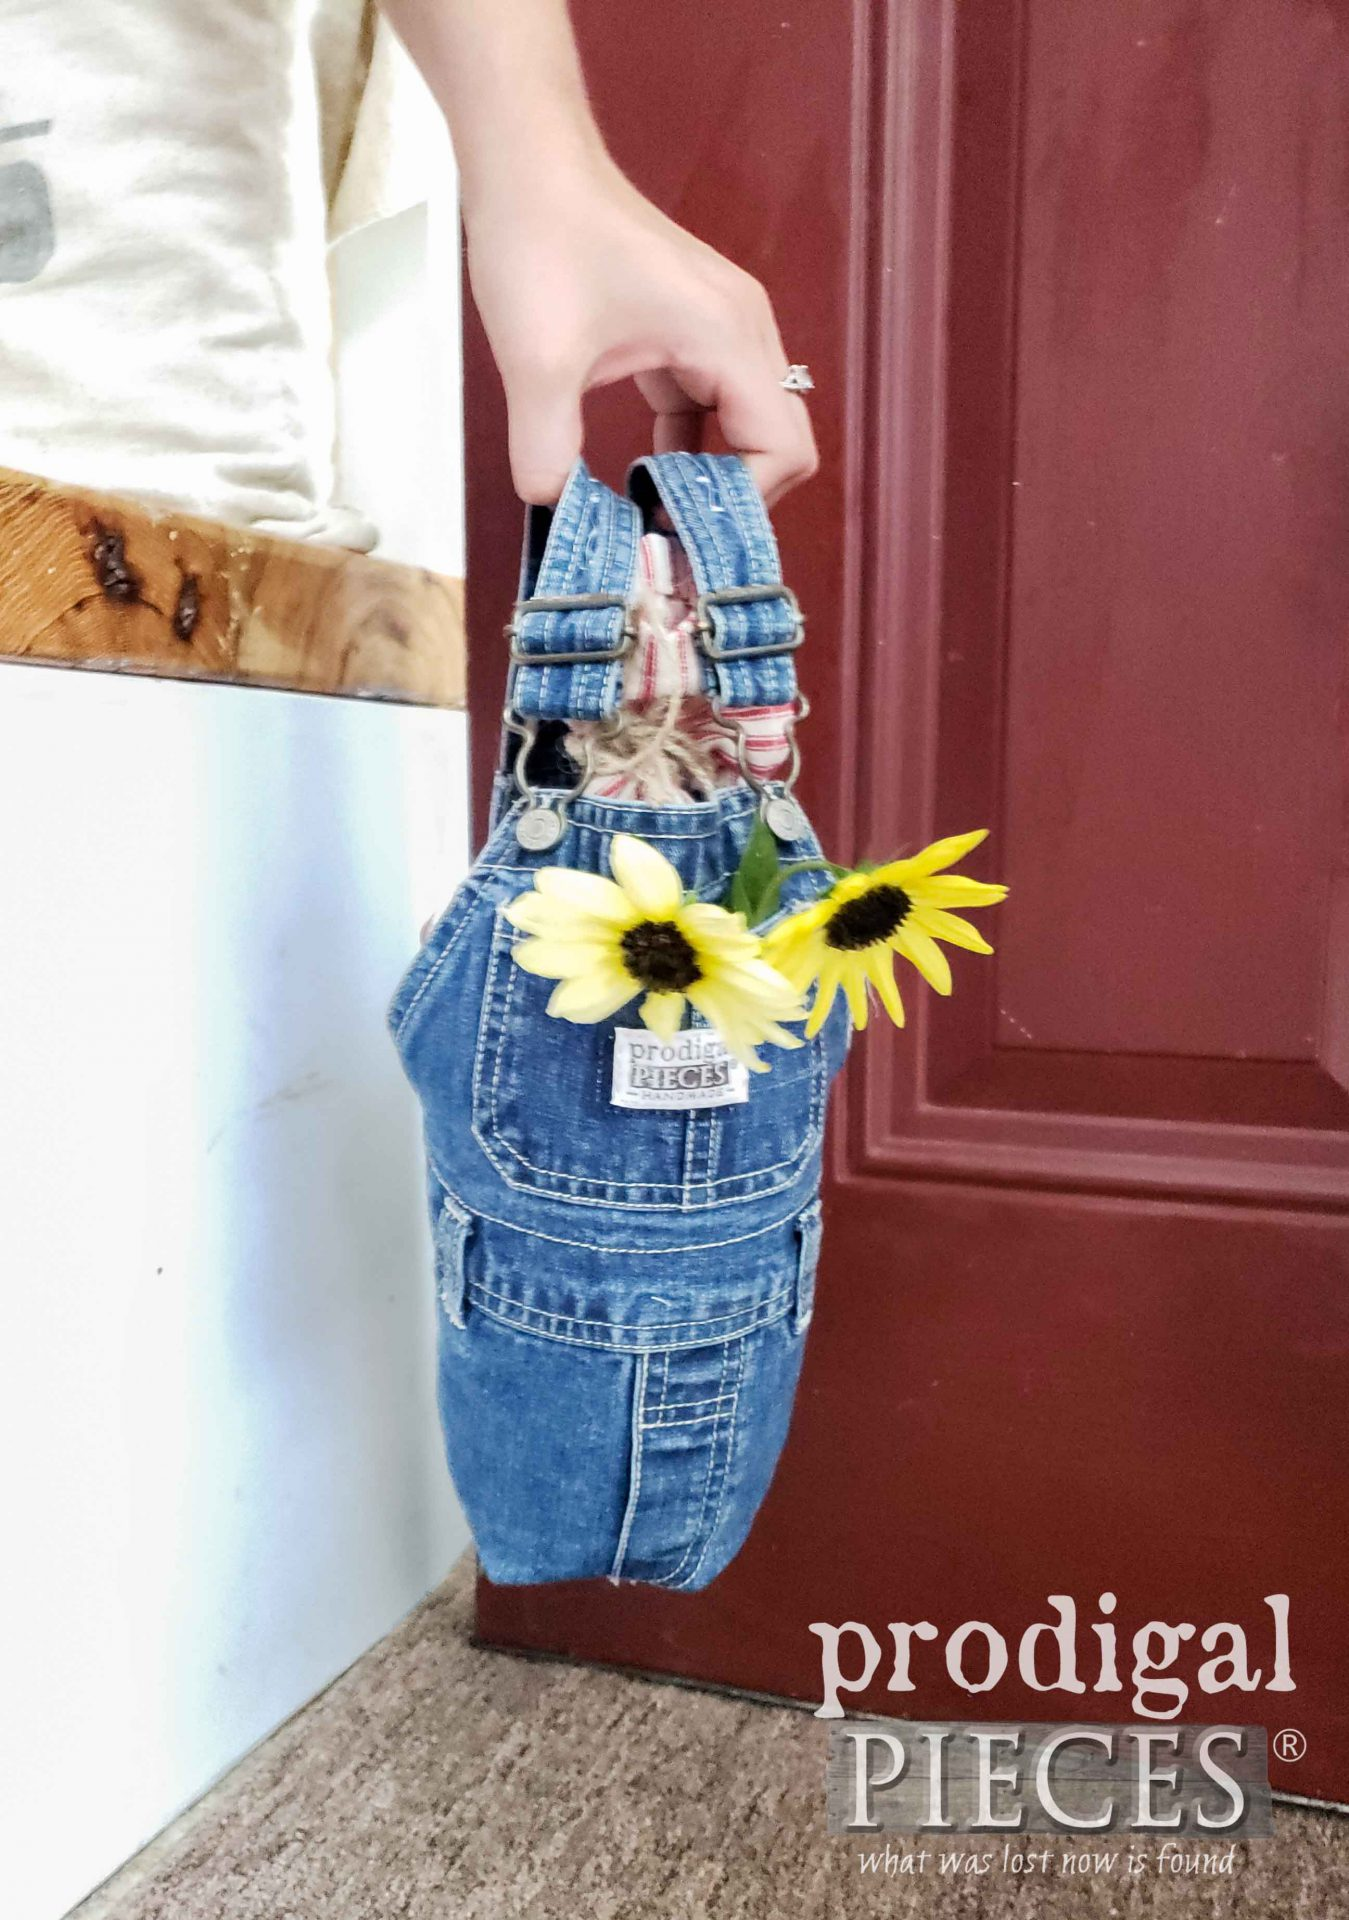 Adorable Baby Bib Overalls Upcycled into Farmhouse Style DIY Doorstop by Larissa of Prodigal Pieces | prodigalpieces.com #prodigalpieces #diy #home #homedecor #farmhouse